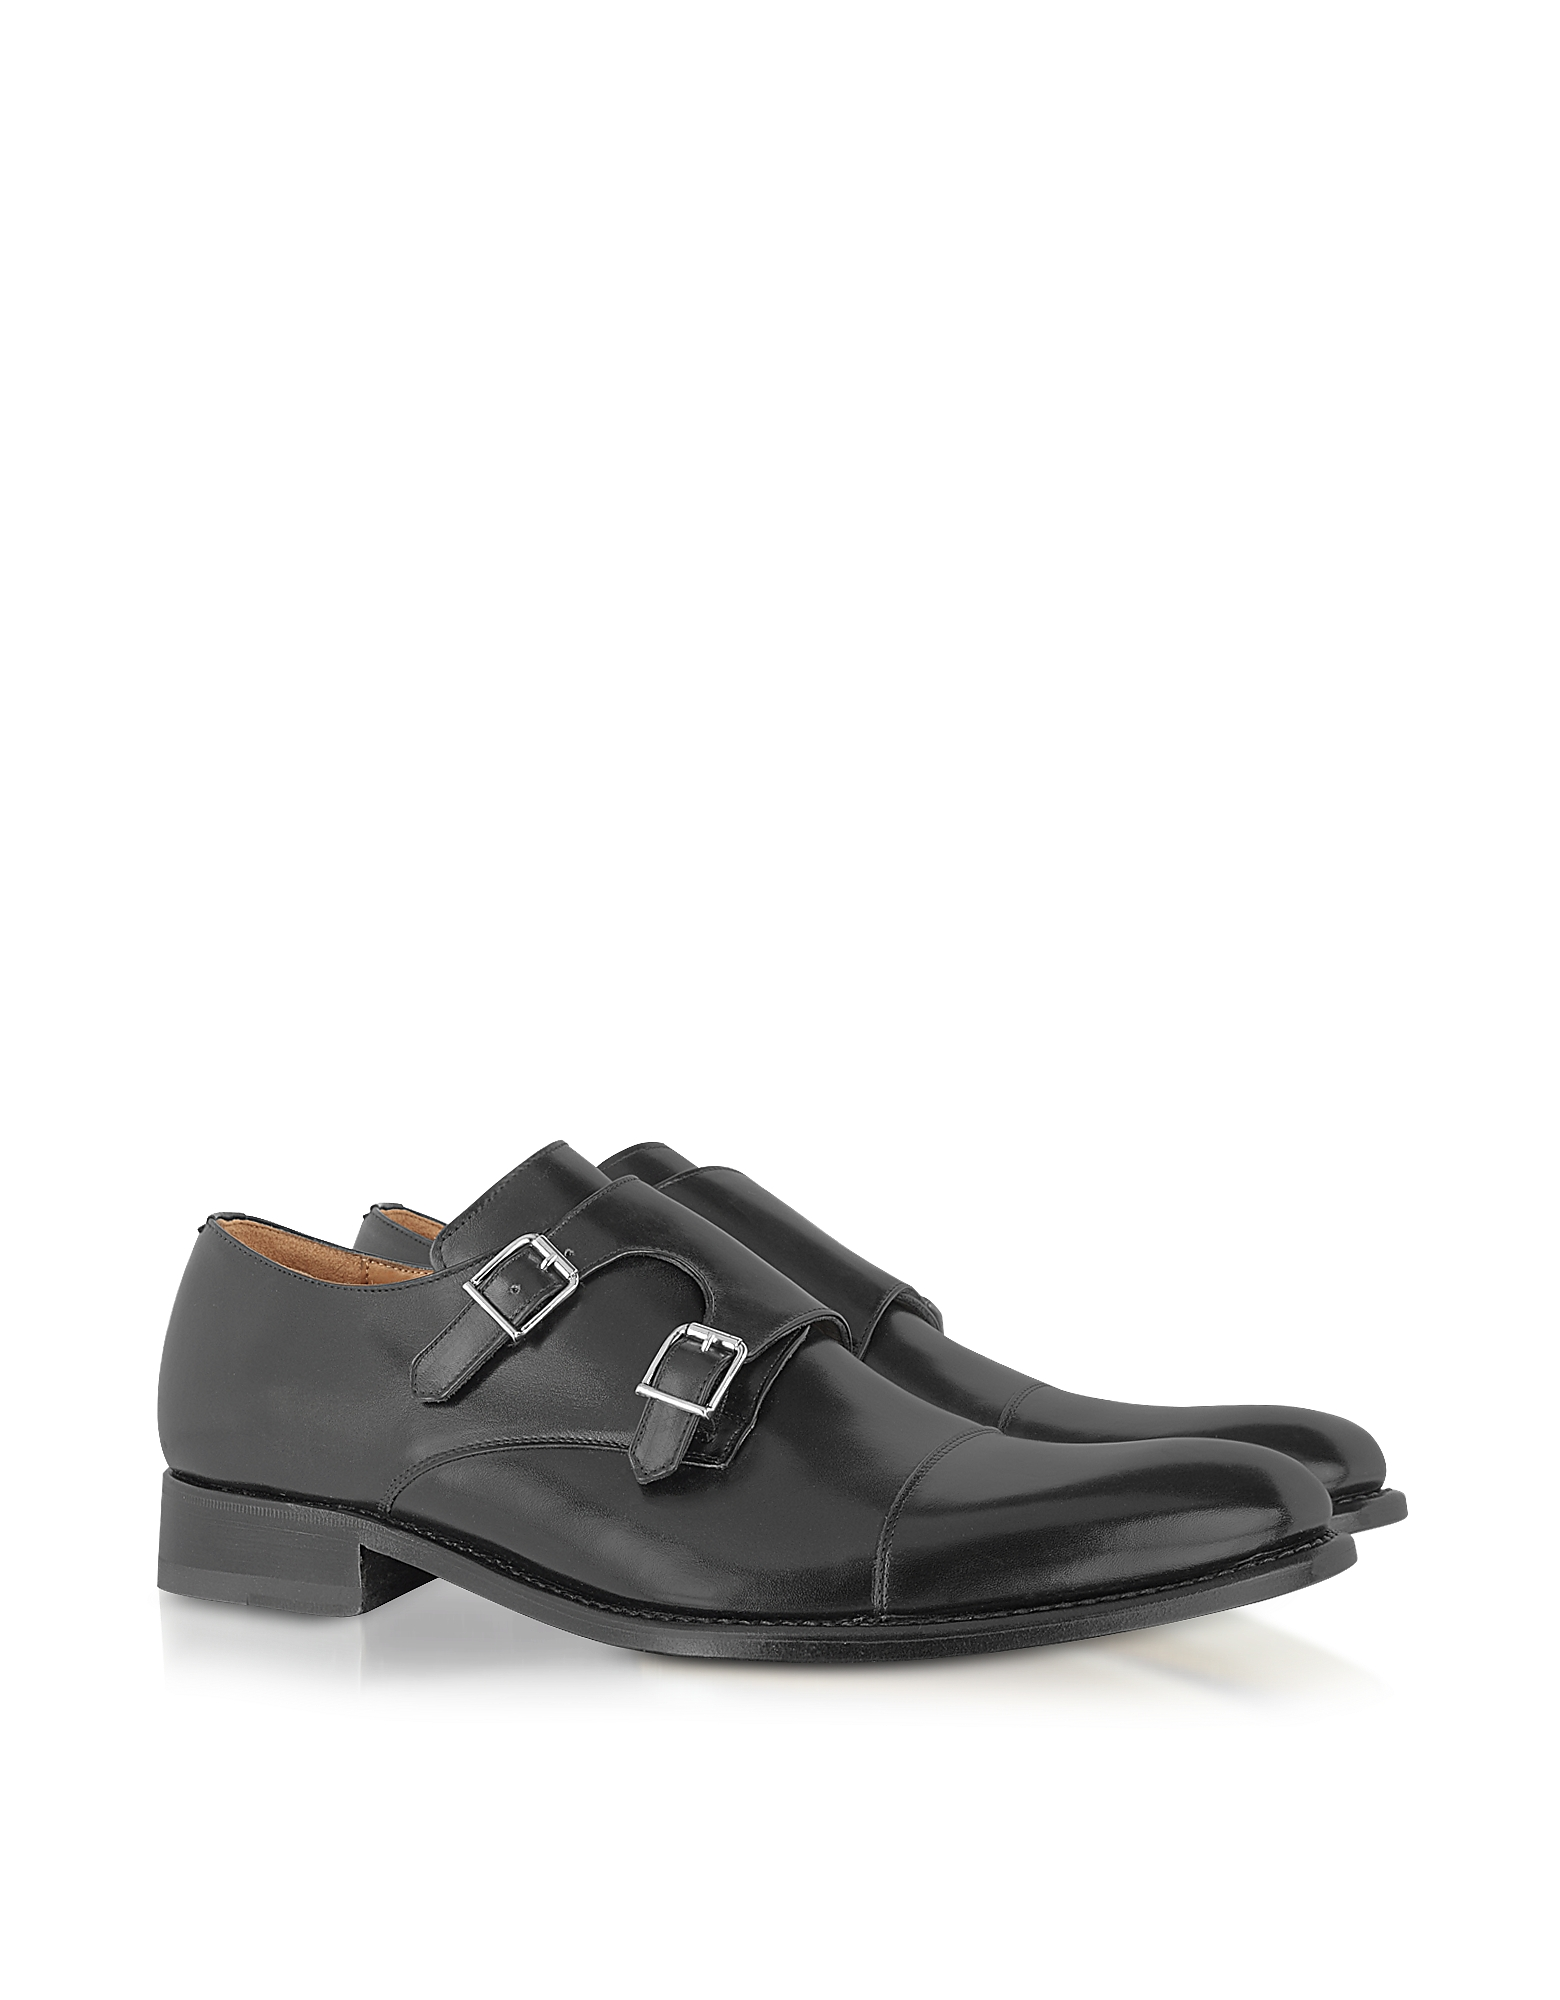 Forzieri Italian Handcrafted Black Leather Monk Strap Shoes